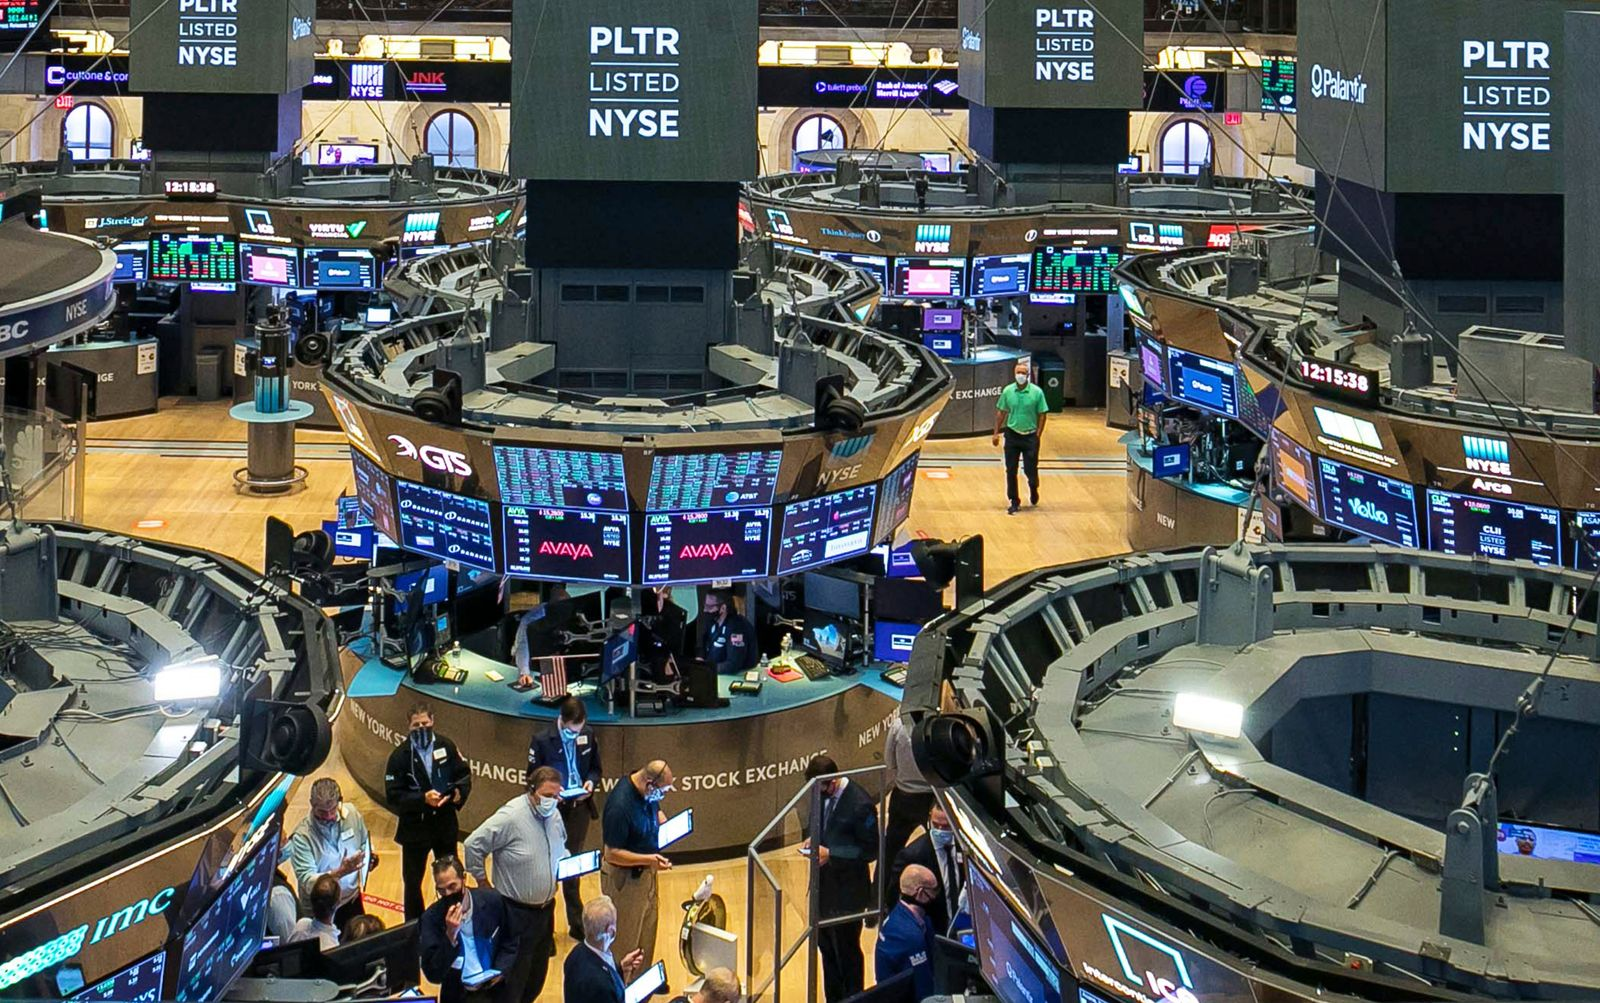 Financial Markets Wall Street Palantir Going Public